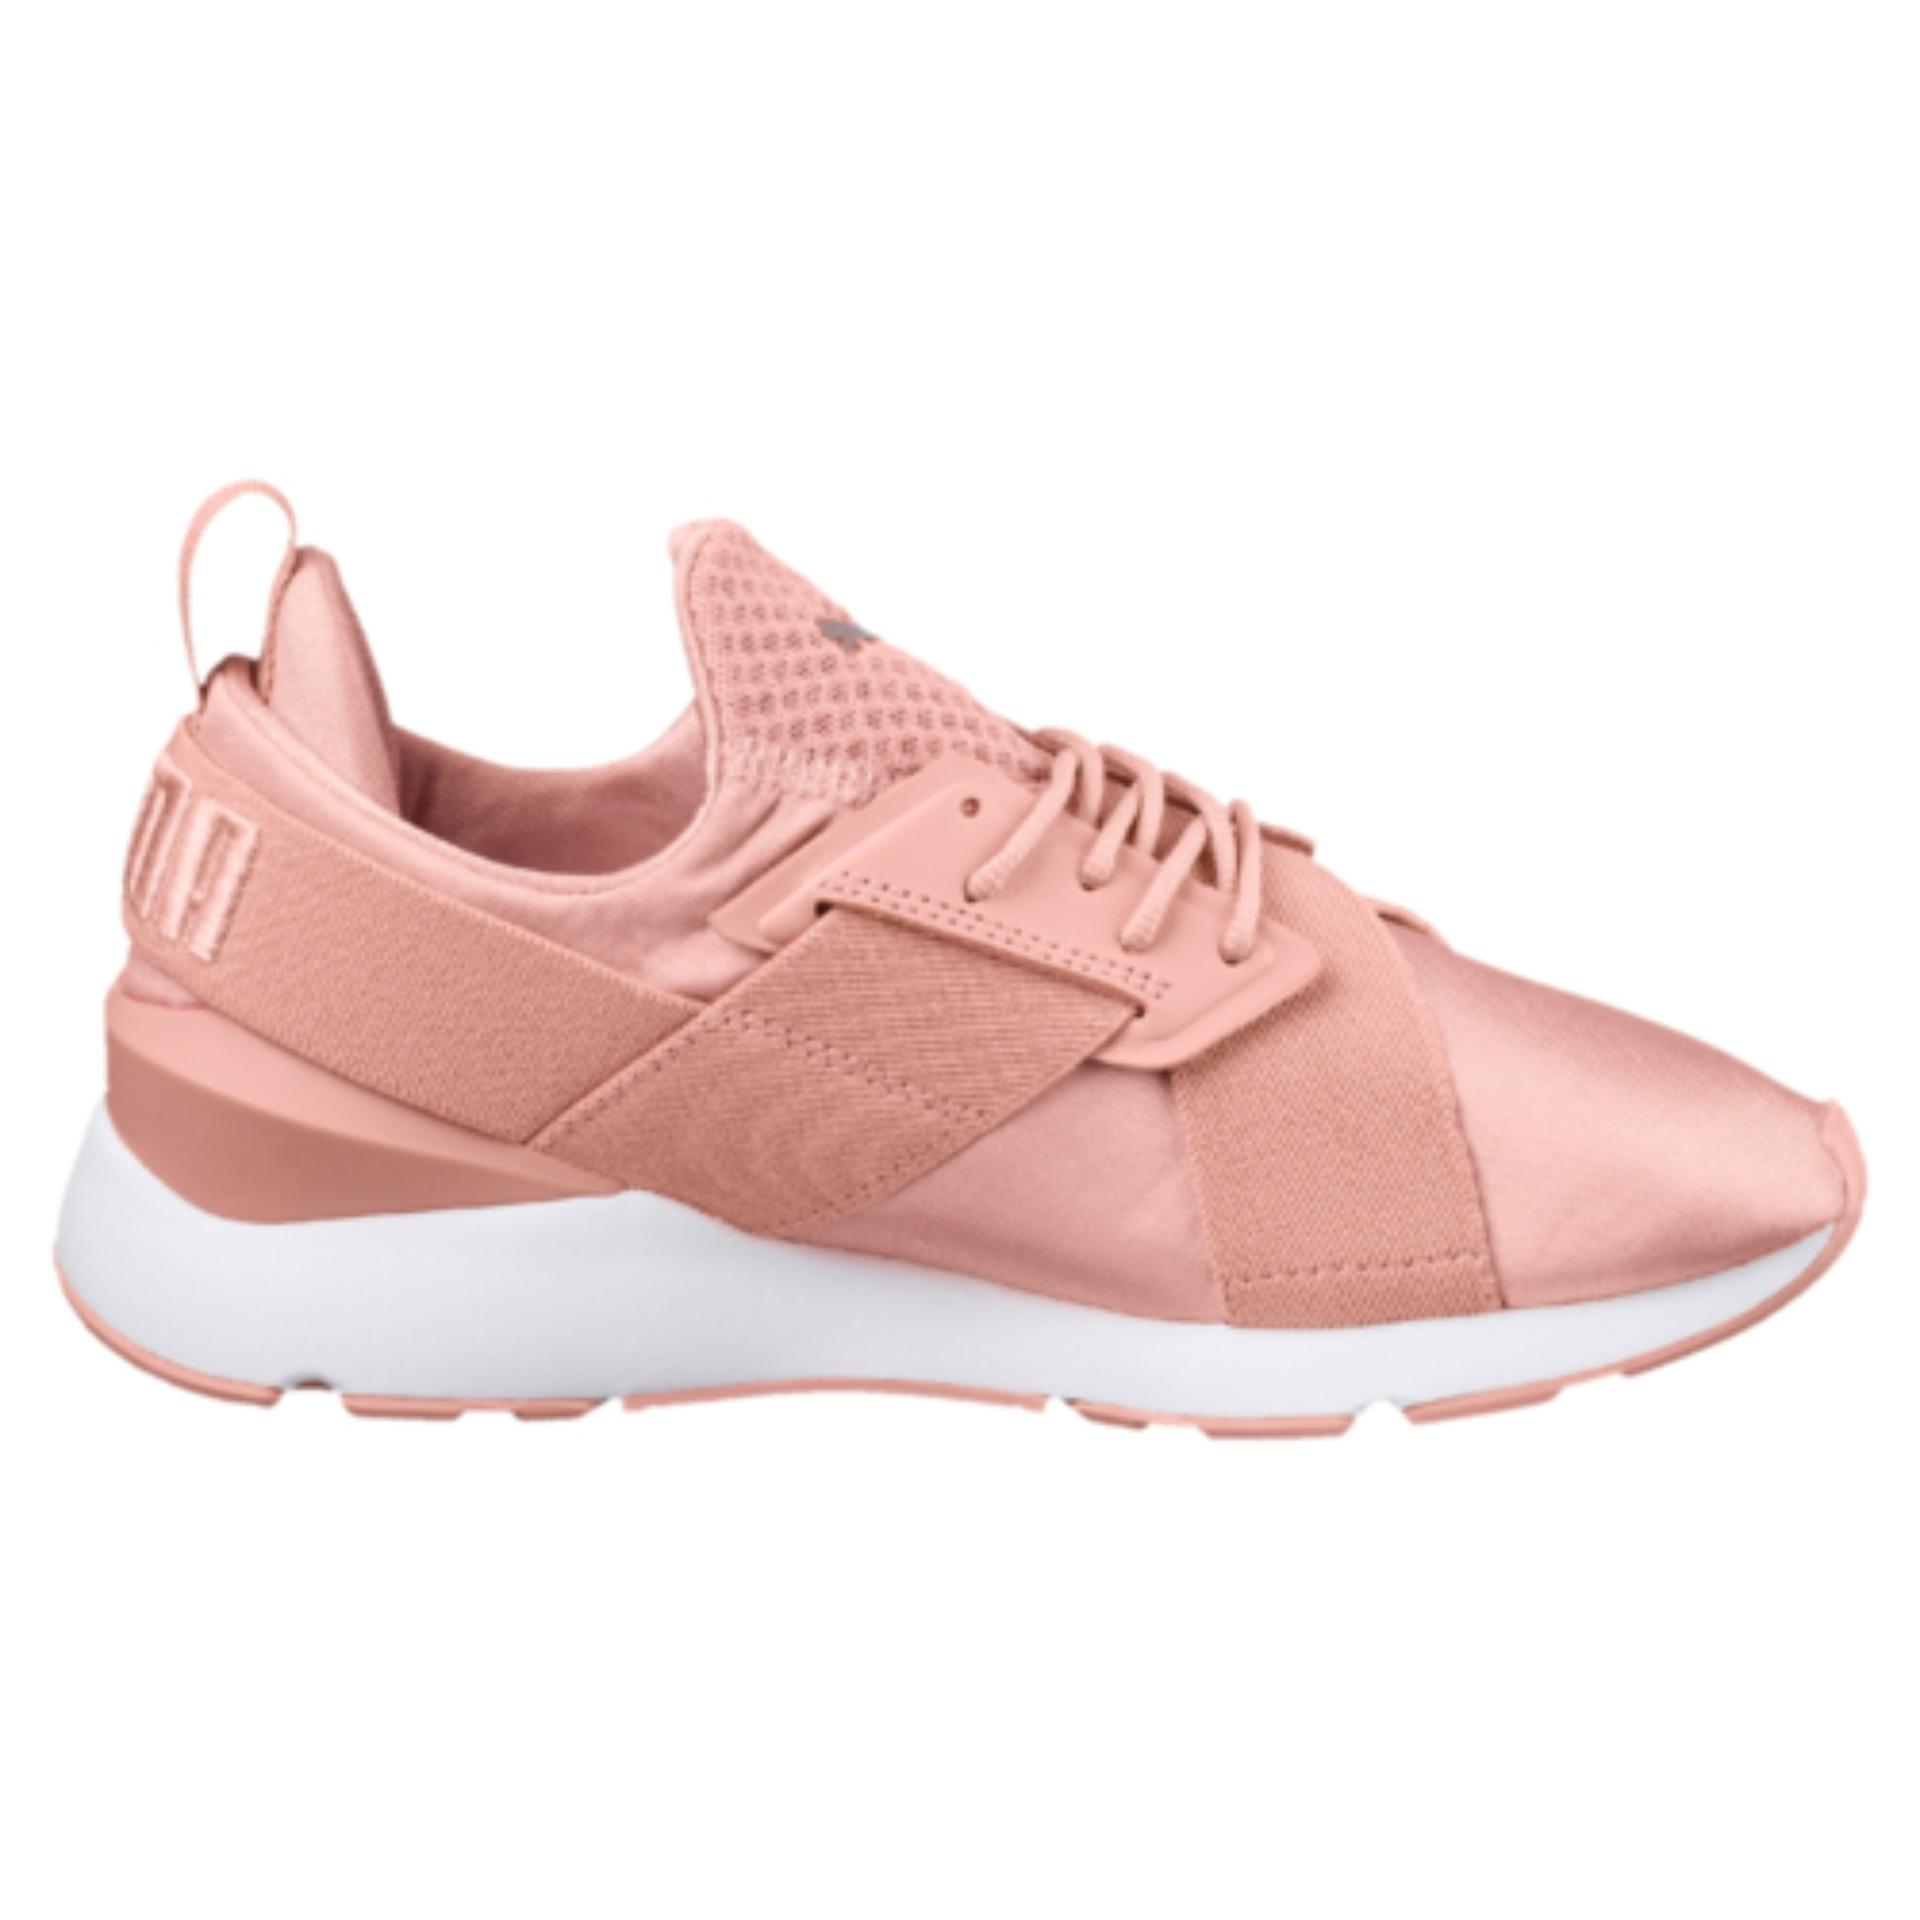 Best Reviews Of Puma Muse Satin Ep Women Sneakers Peach Beige Puma Whitepeach Beige Puma White